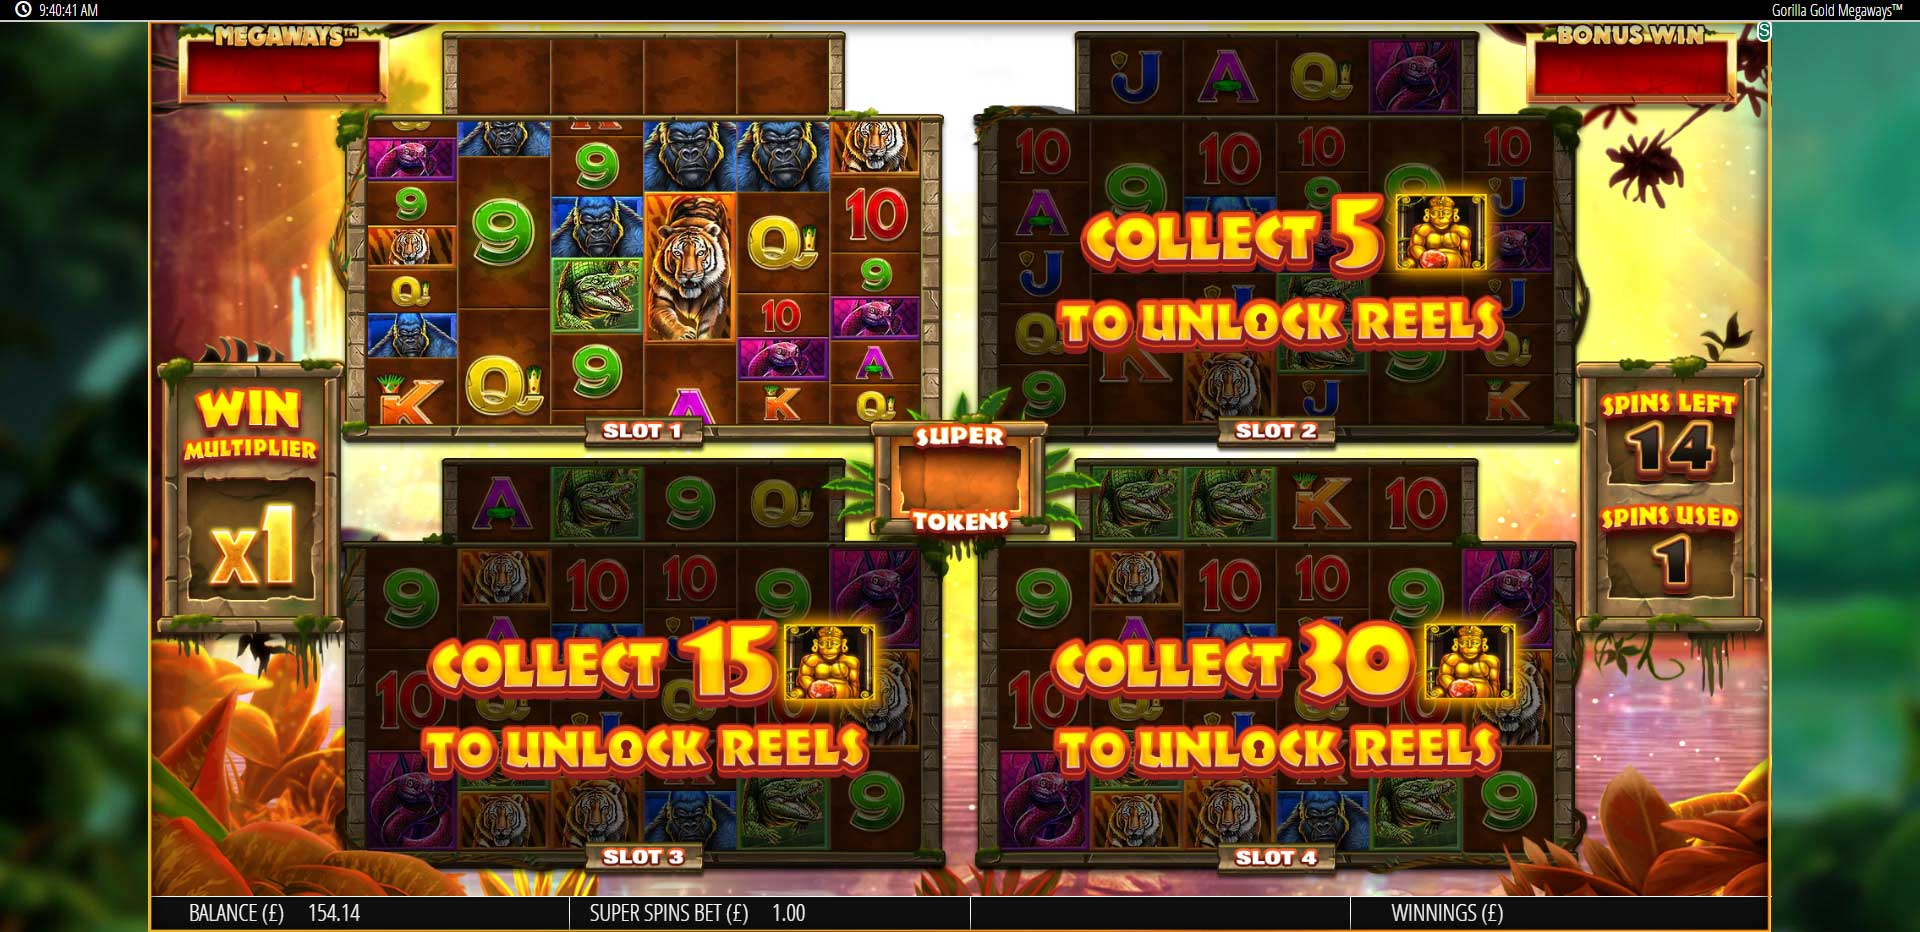 Gorilla Gold MegaWays Casino Game